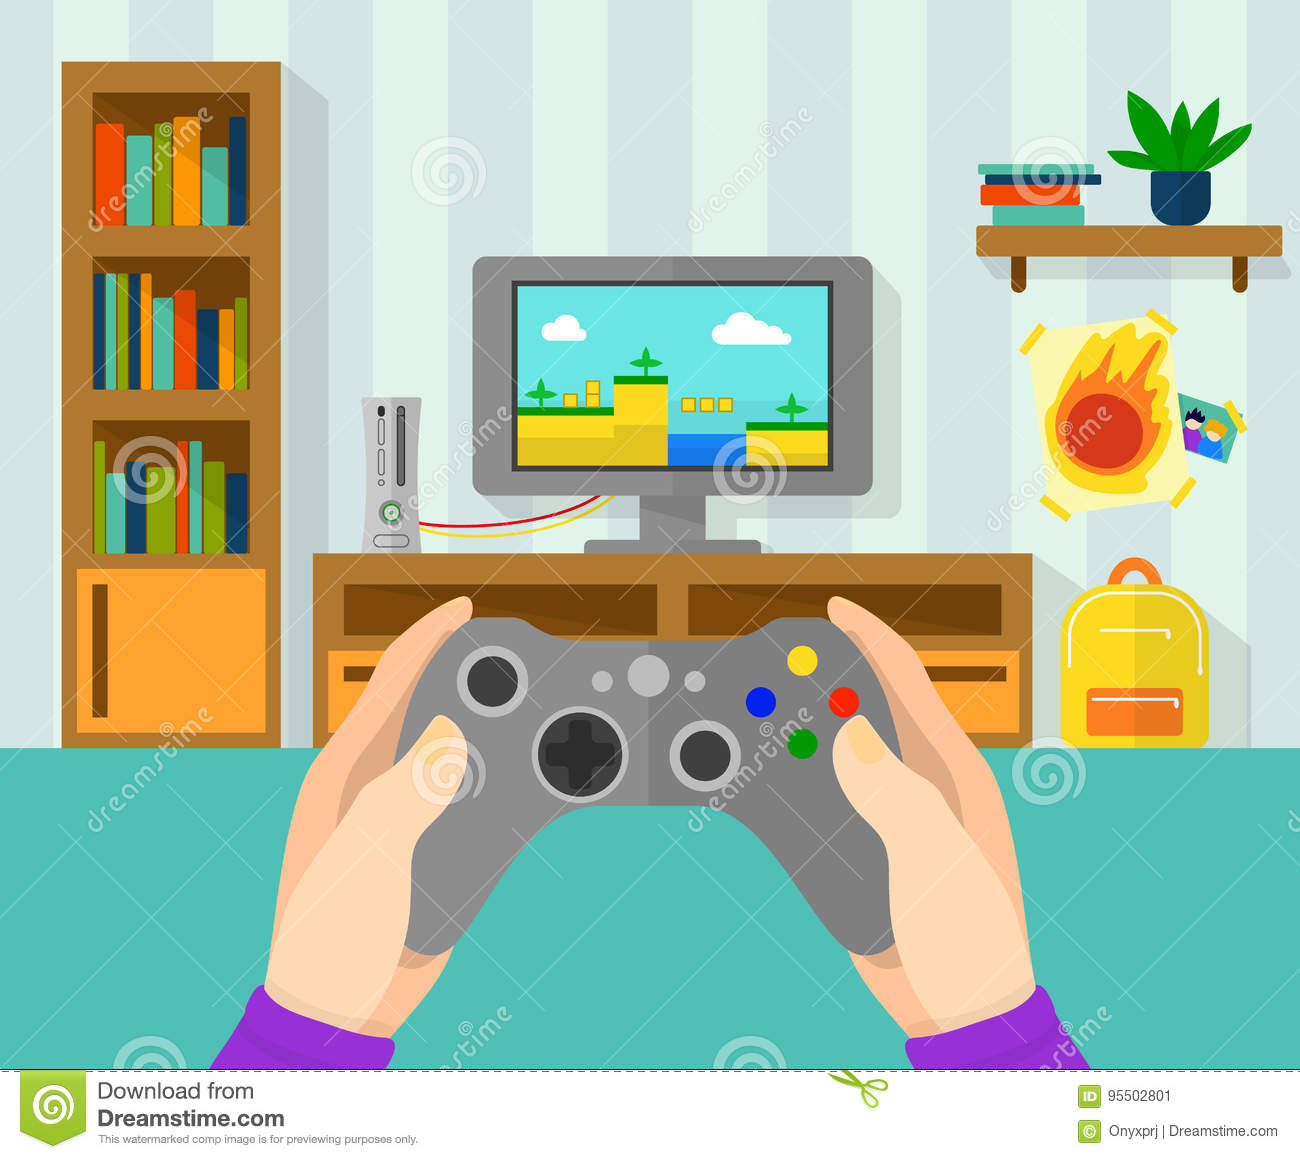 Interior Design Games For Pc Free Download: Interior Of Gamer Room. Illustration Of Game Controller In